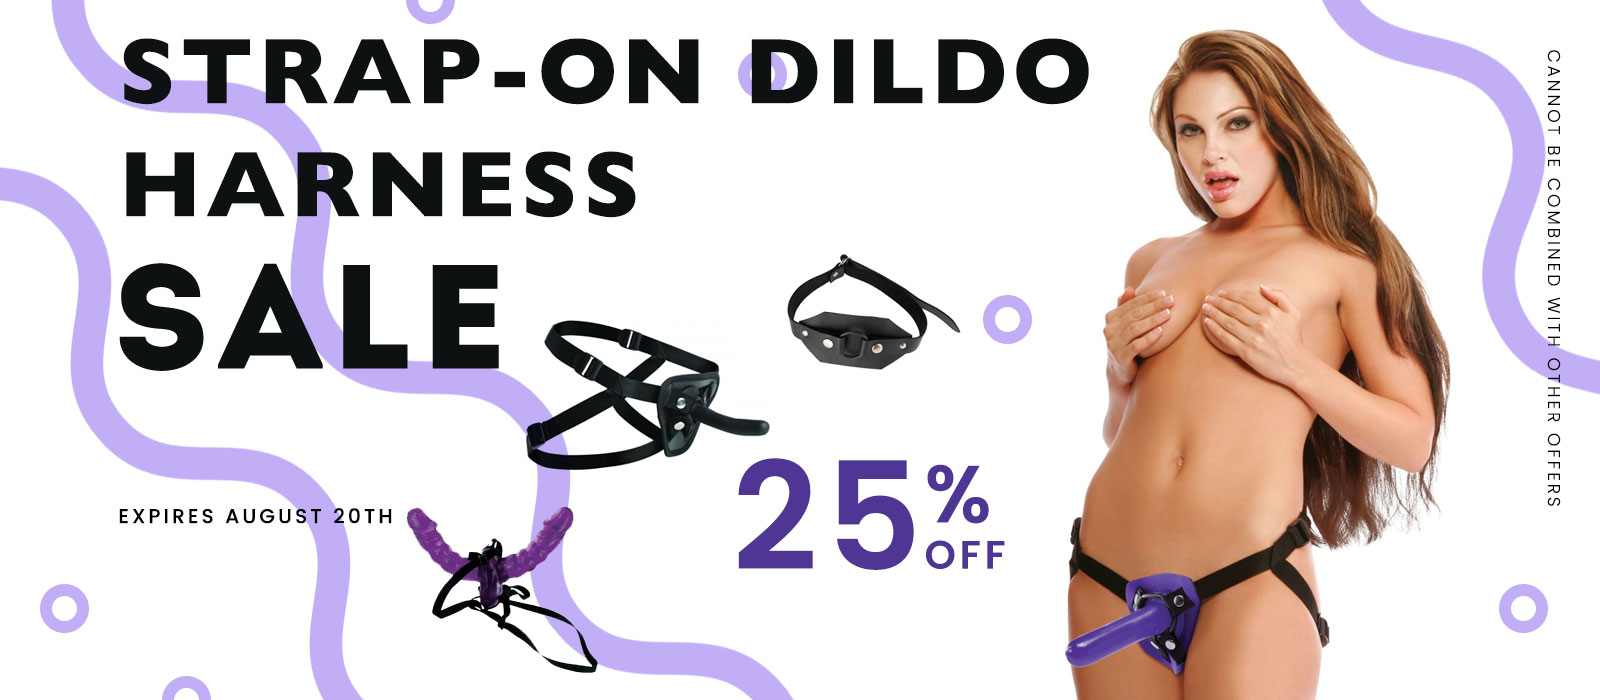 Strap-on harness with dildo included sale